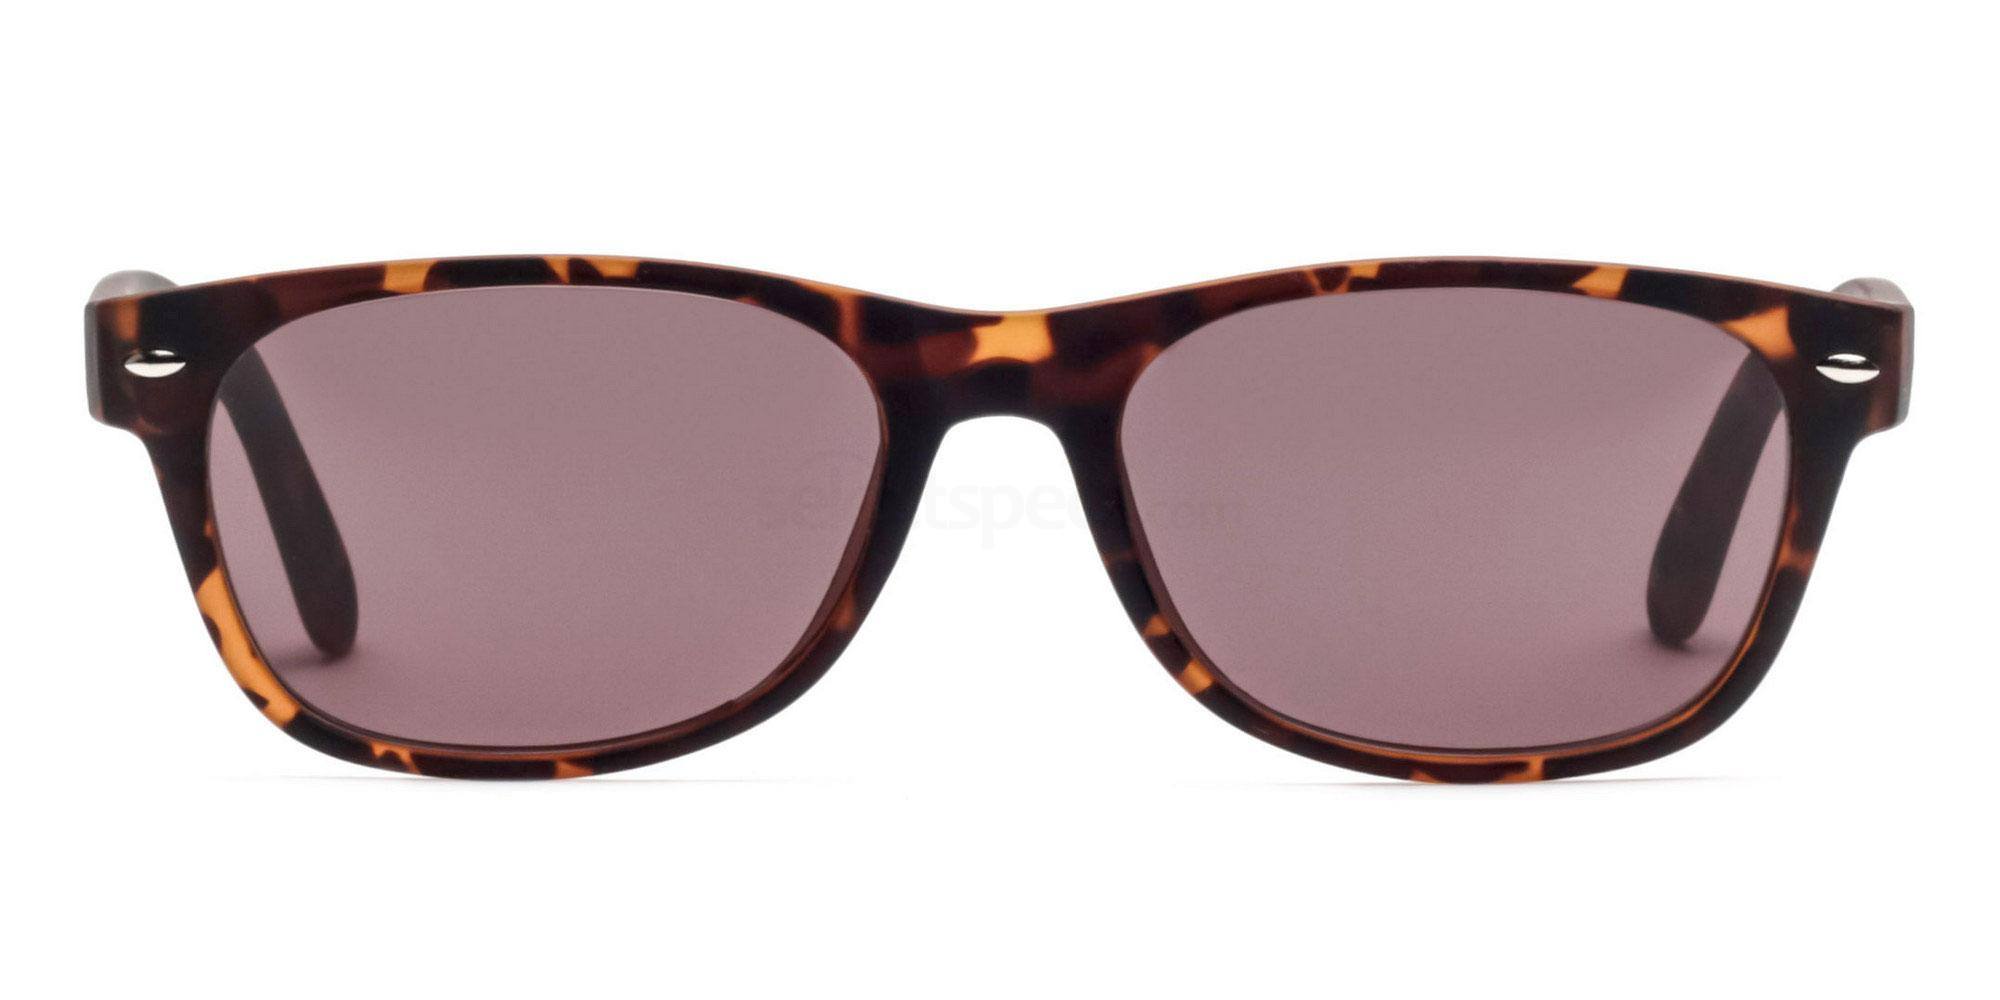 Savannah S8122 - Tortoise (Sunglasses)